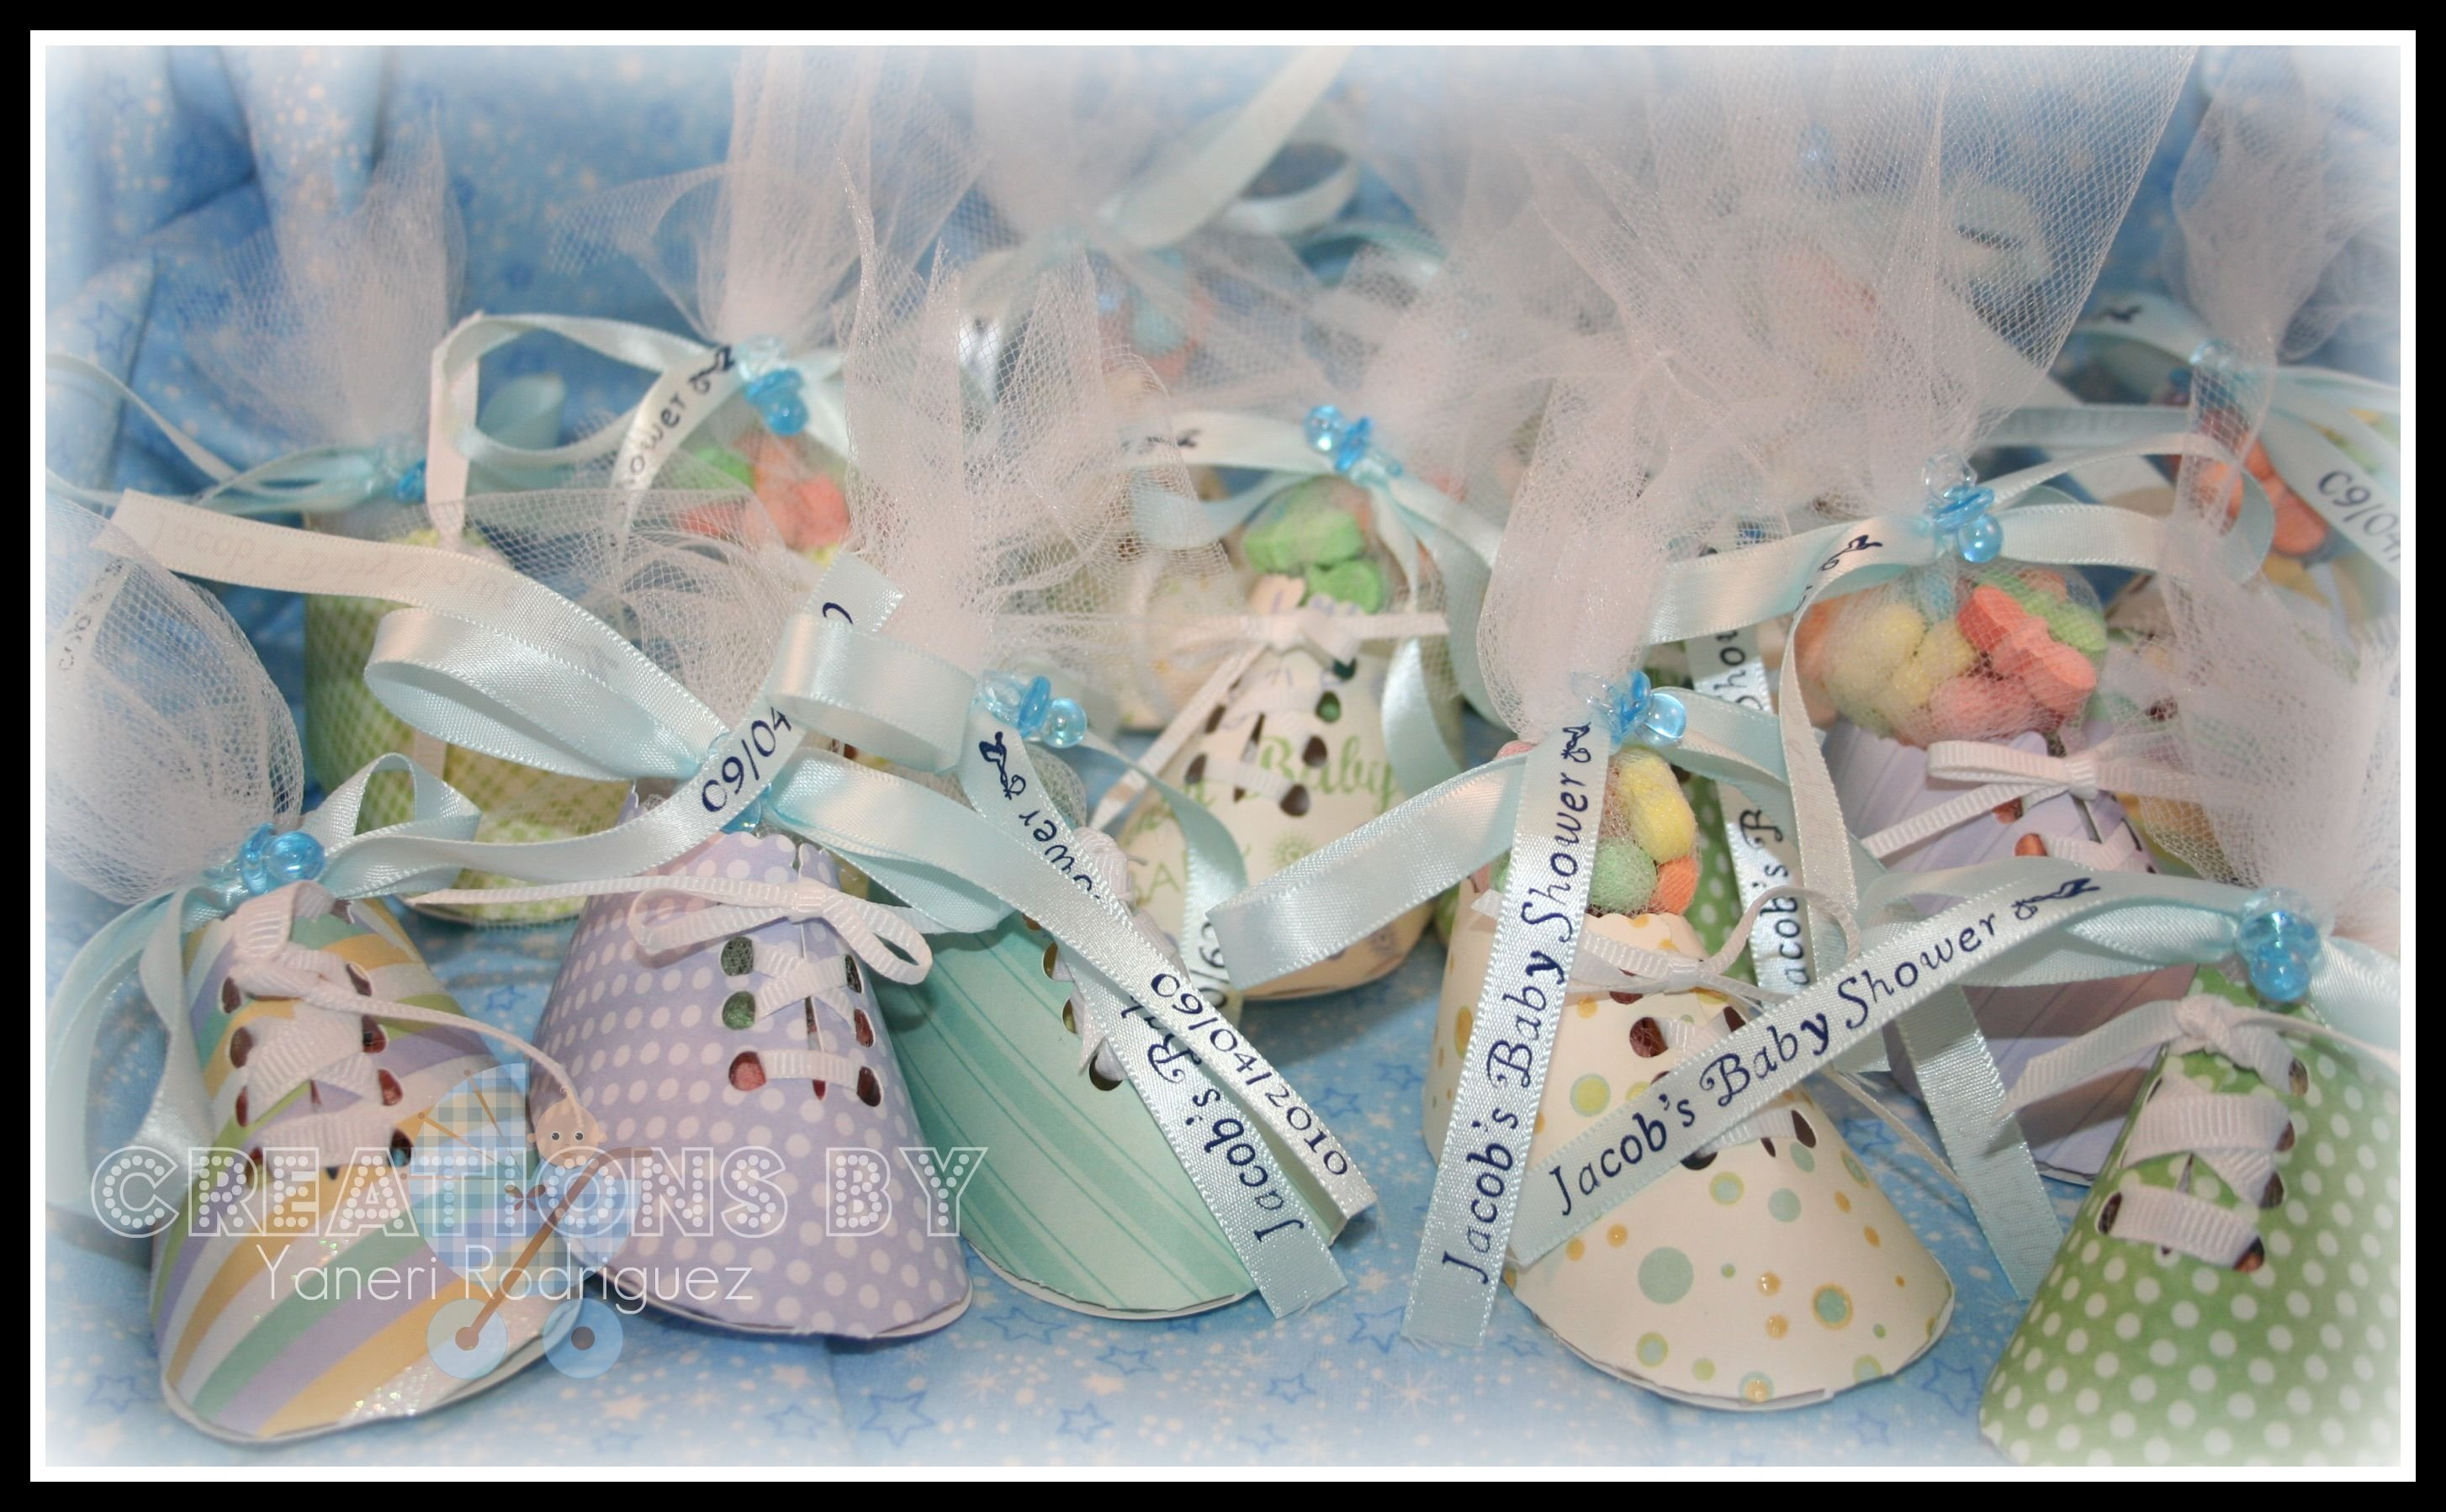 10 Famous Ideas For Baby Shower Favors photo baby shower favors egg image 1 2020